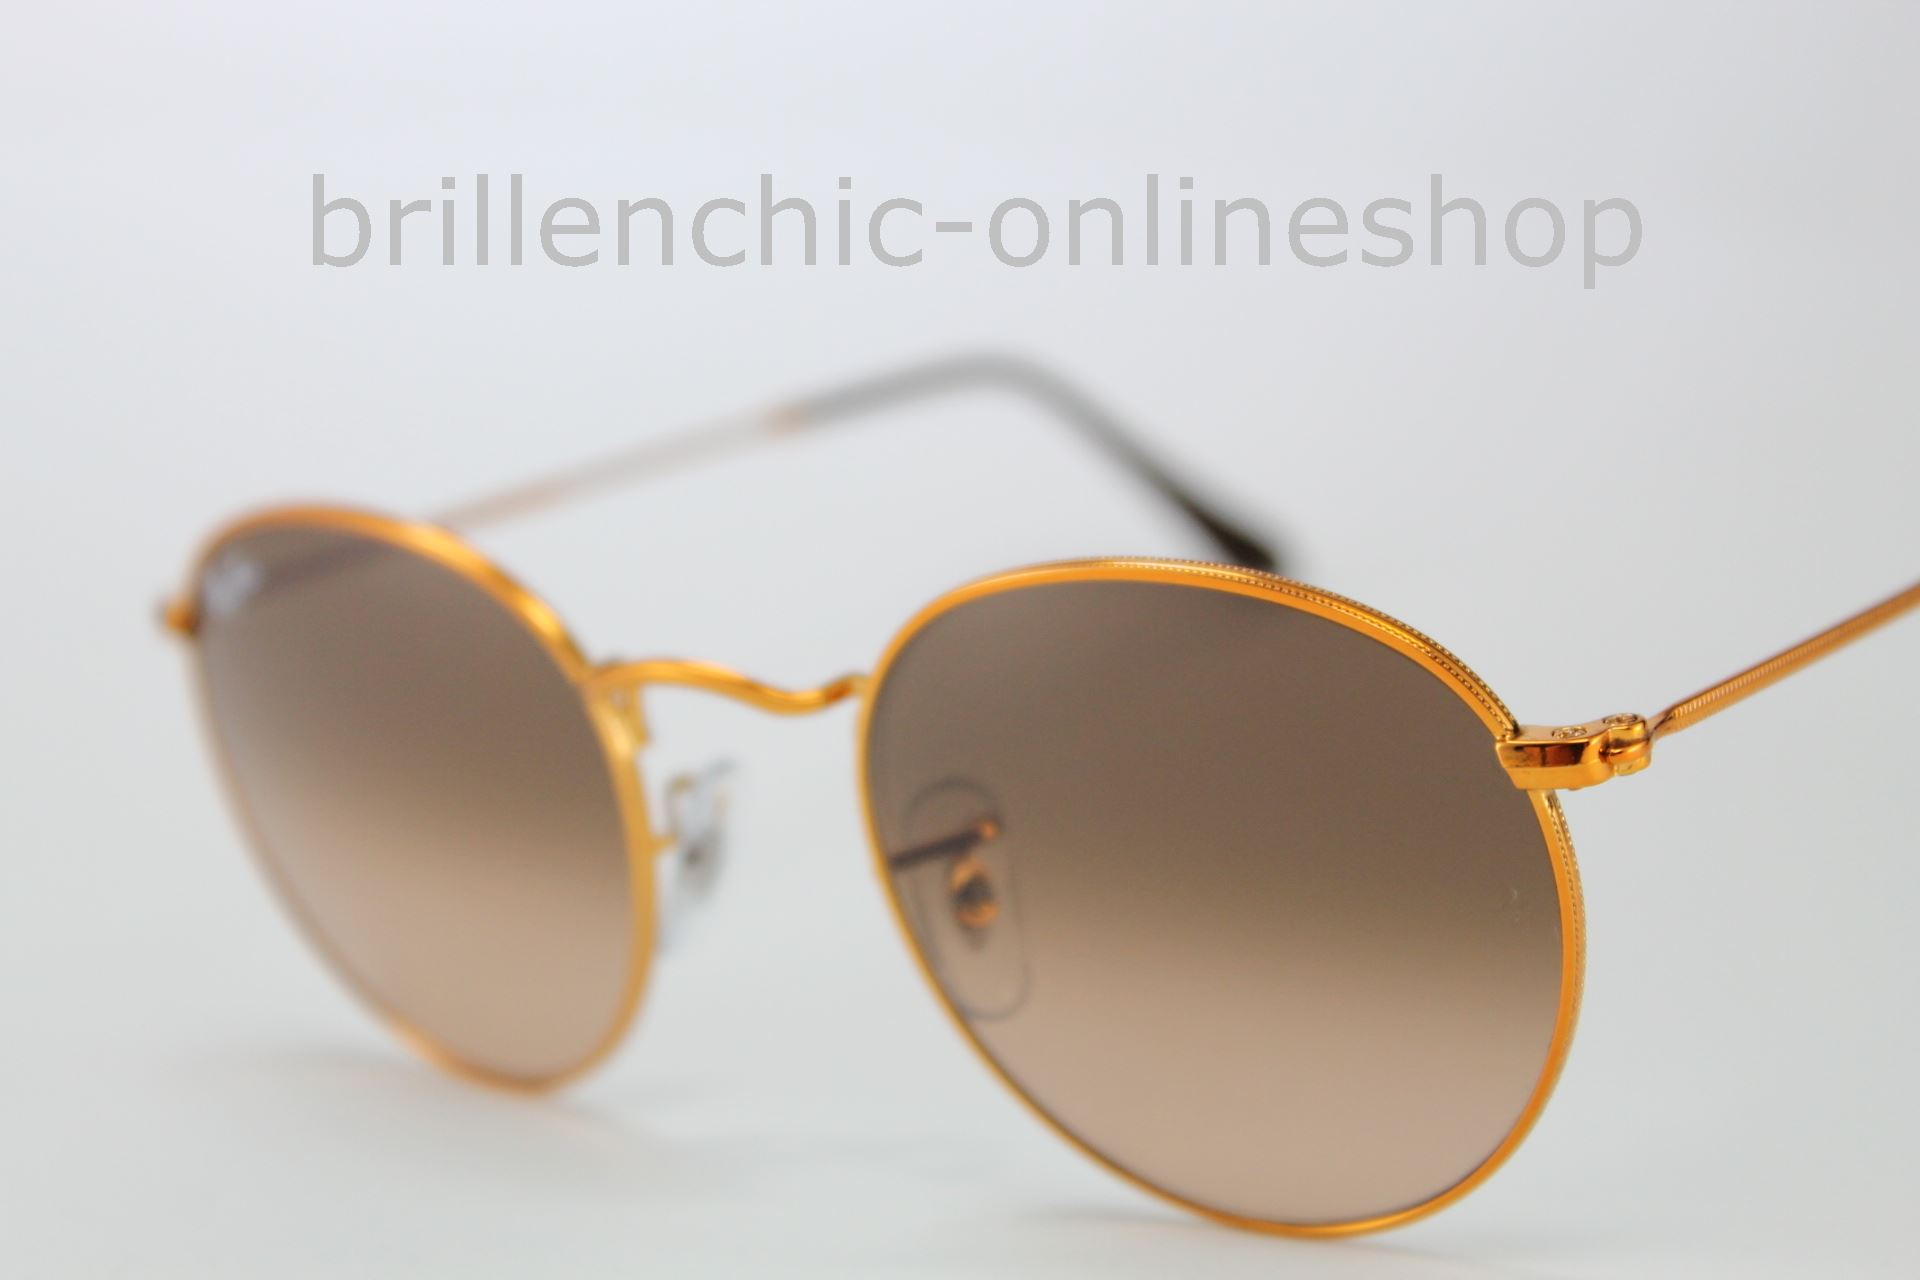 c54cb82556ca3 Brillenchic-onlineshop in Berlin - Ray Ban ROUND METAL RB 3447 9001 A5